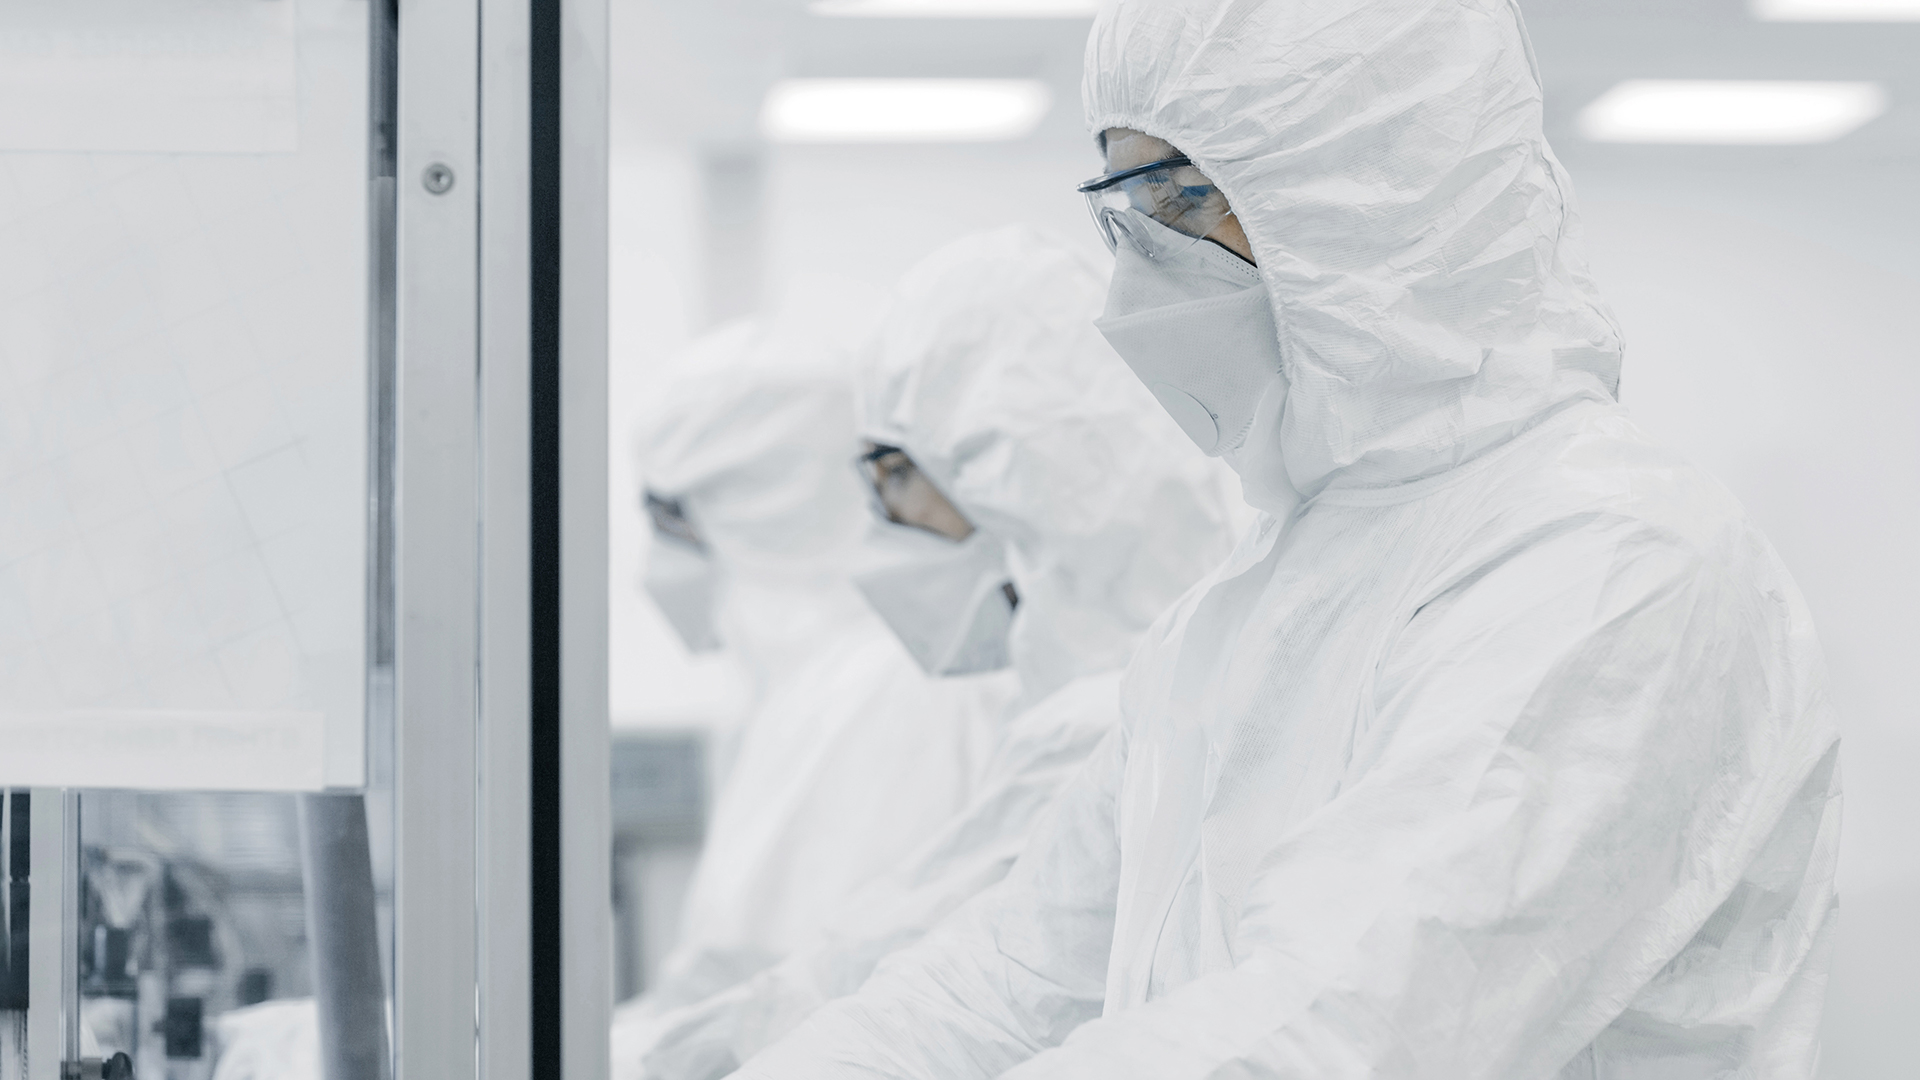 Three persons in cleanroom suits